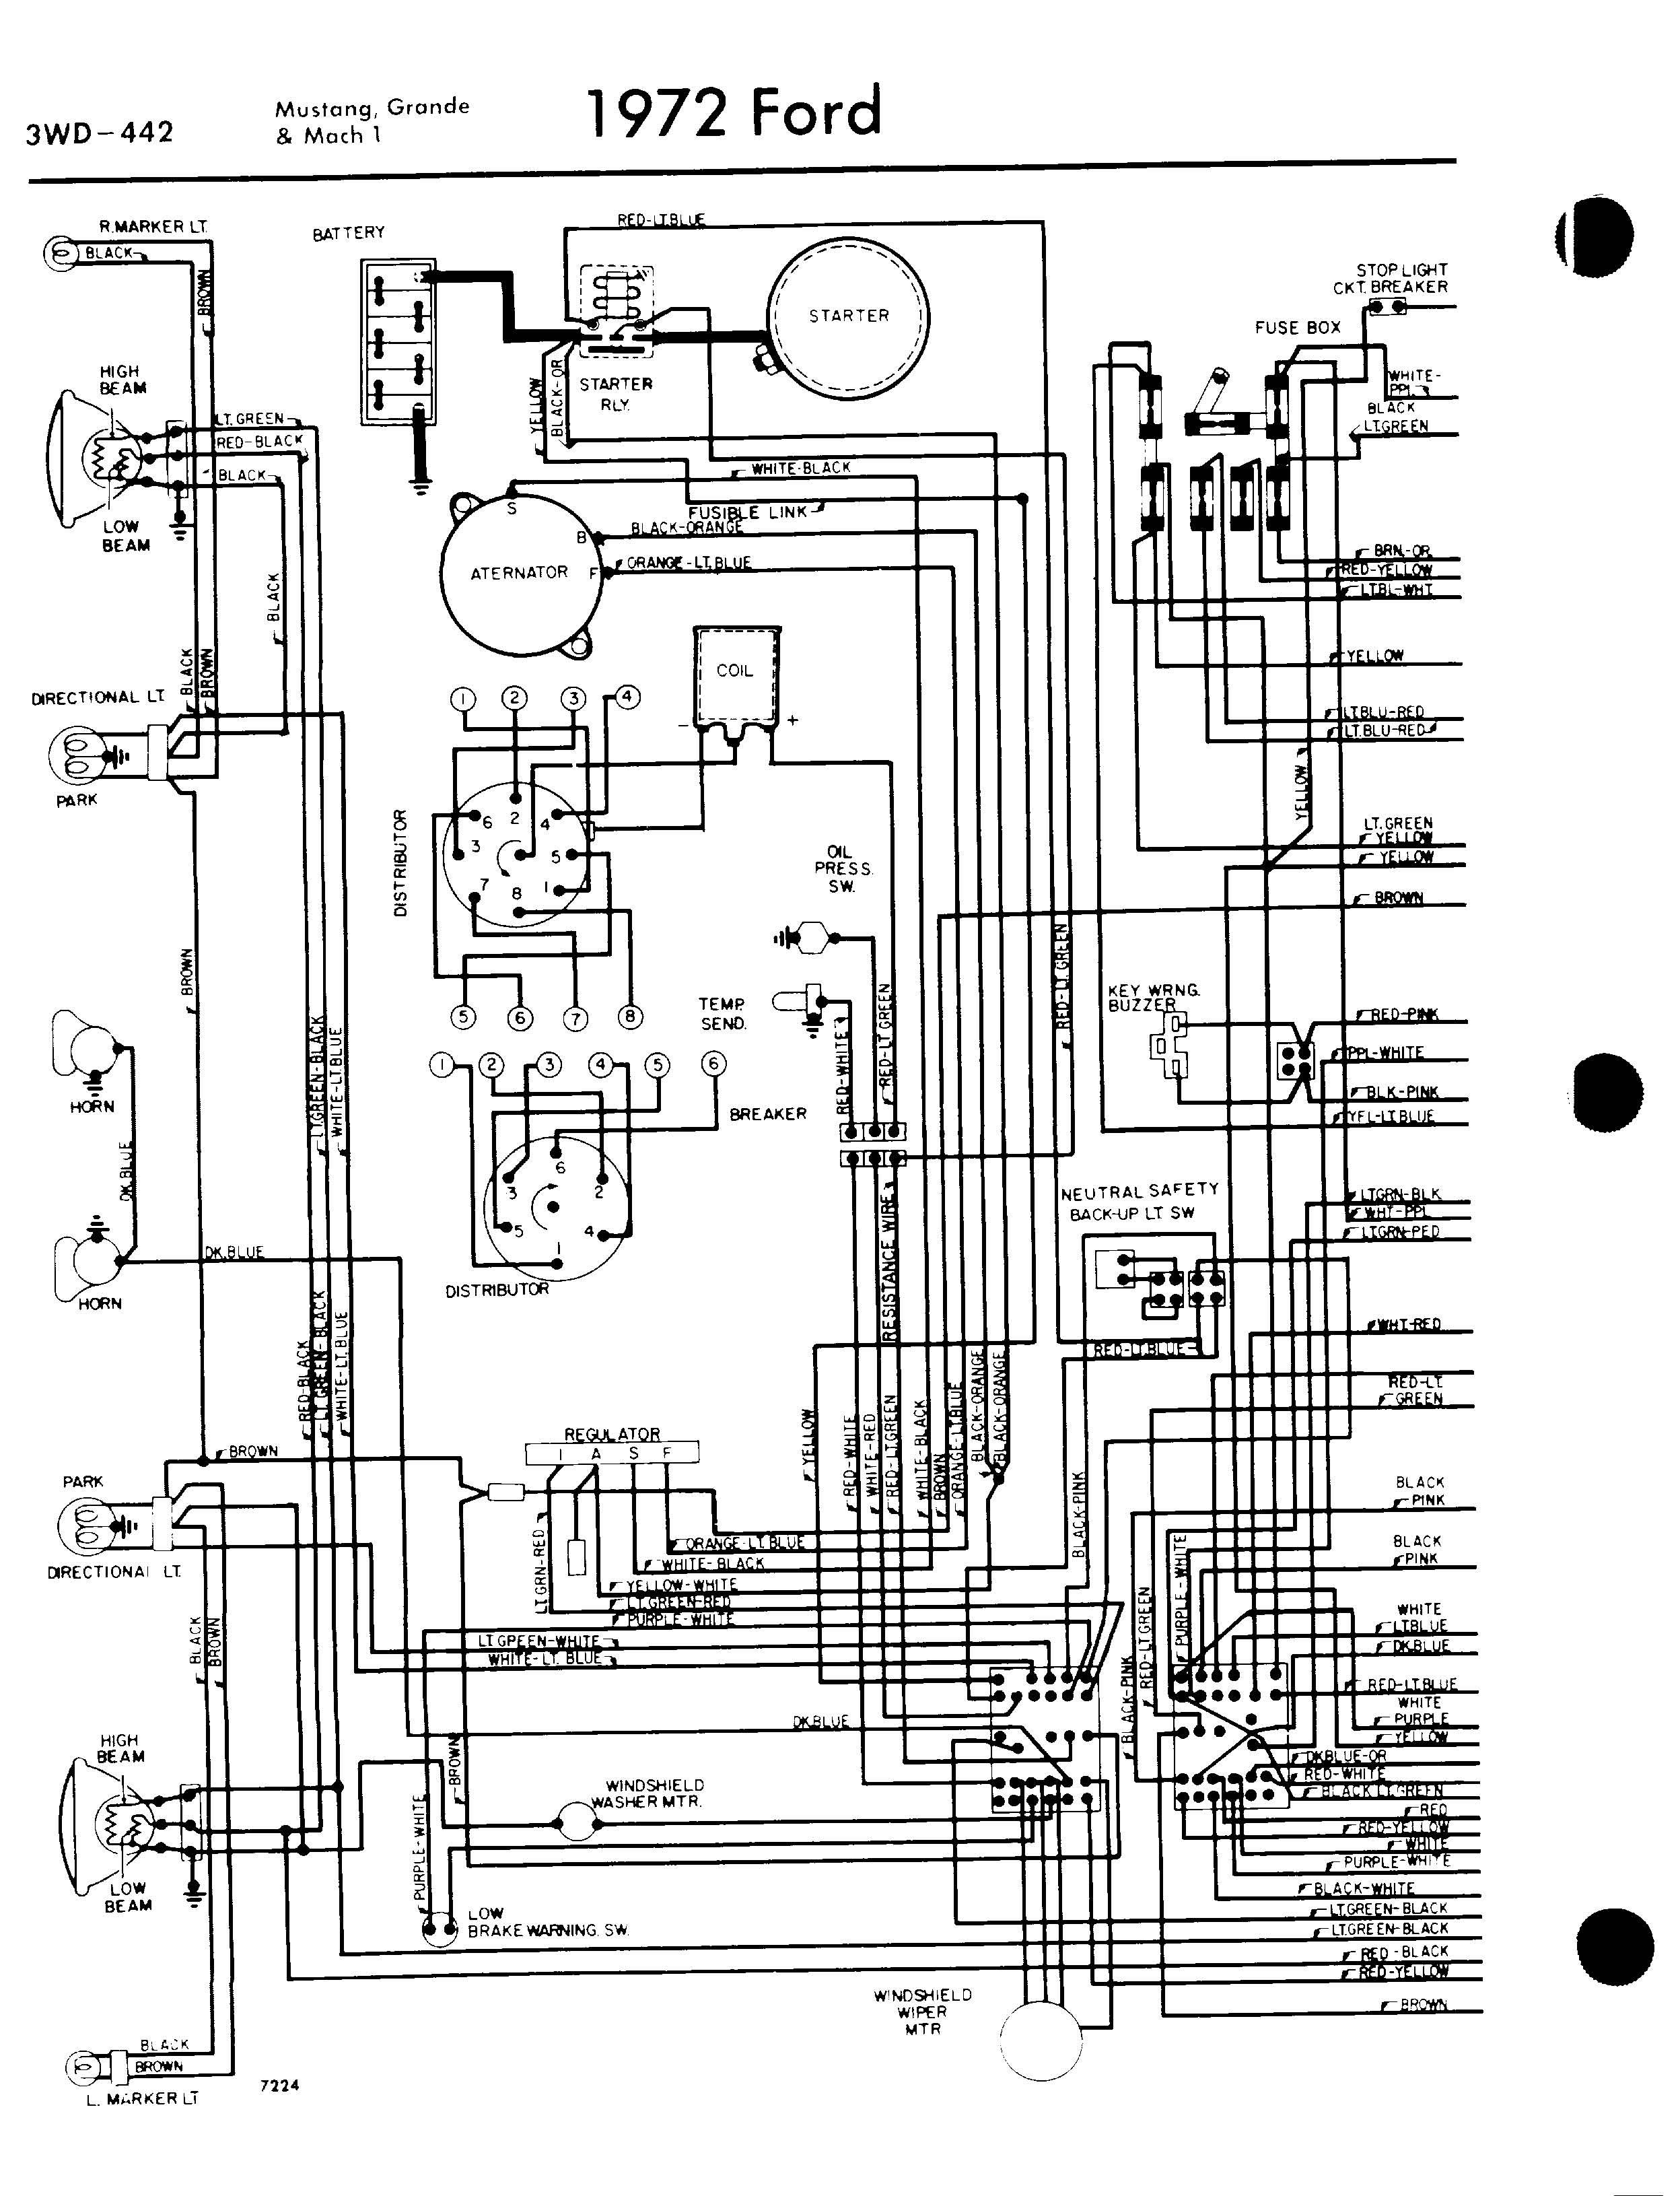 72 mach1 alternator wire harness diagram yahoo search results yahoo image search results. Black Bedroom Furniture Sets. Home Design Ideas